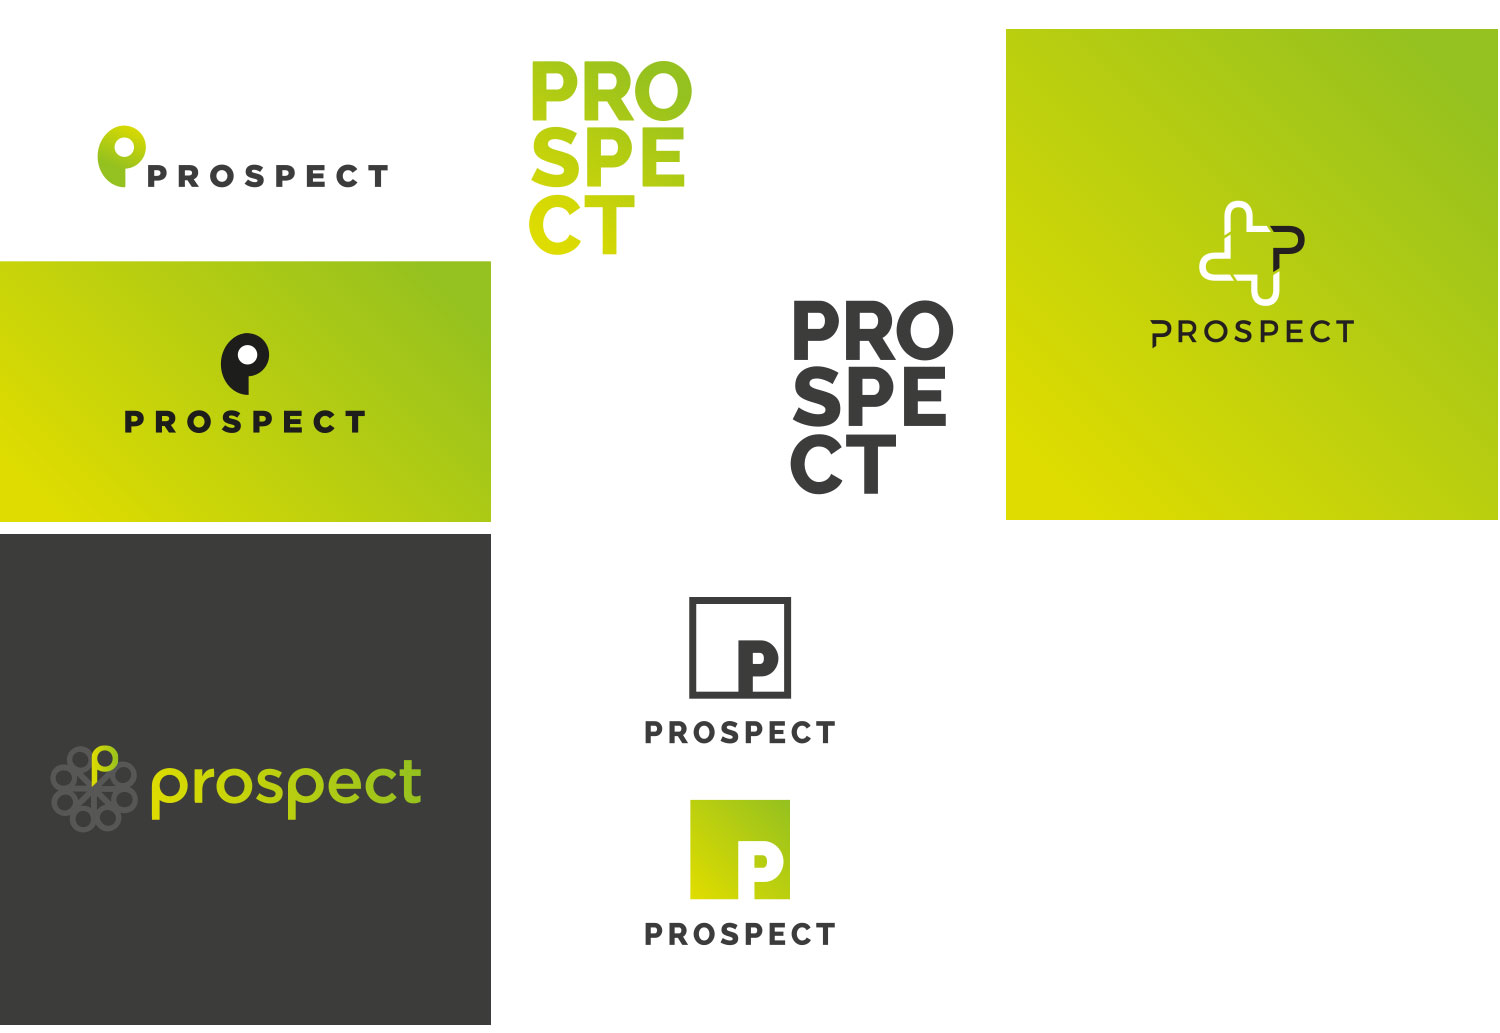 Refining the clients preferred logo concepts further